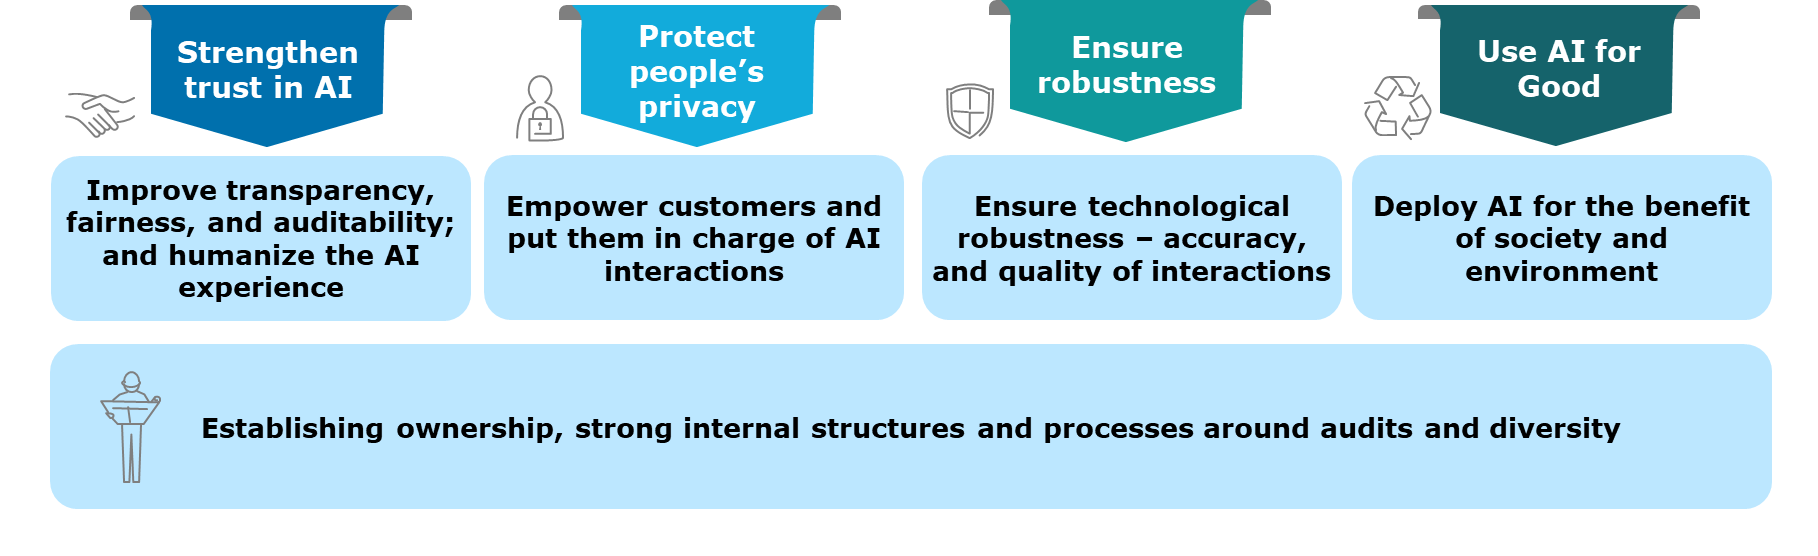 Figure 1: A framework to build and use ethically robust AI systems (Source: Capgemini Research Institute Analysis)